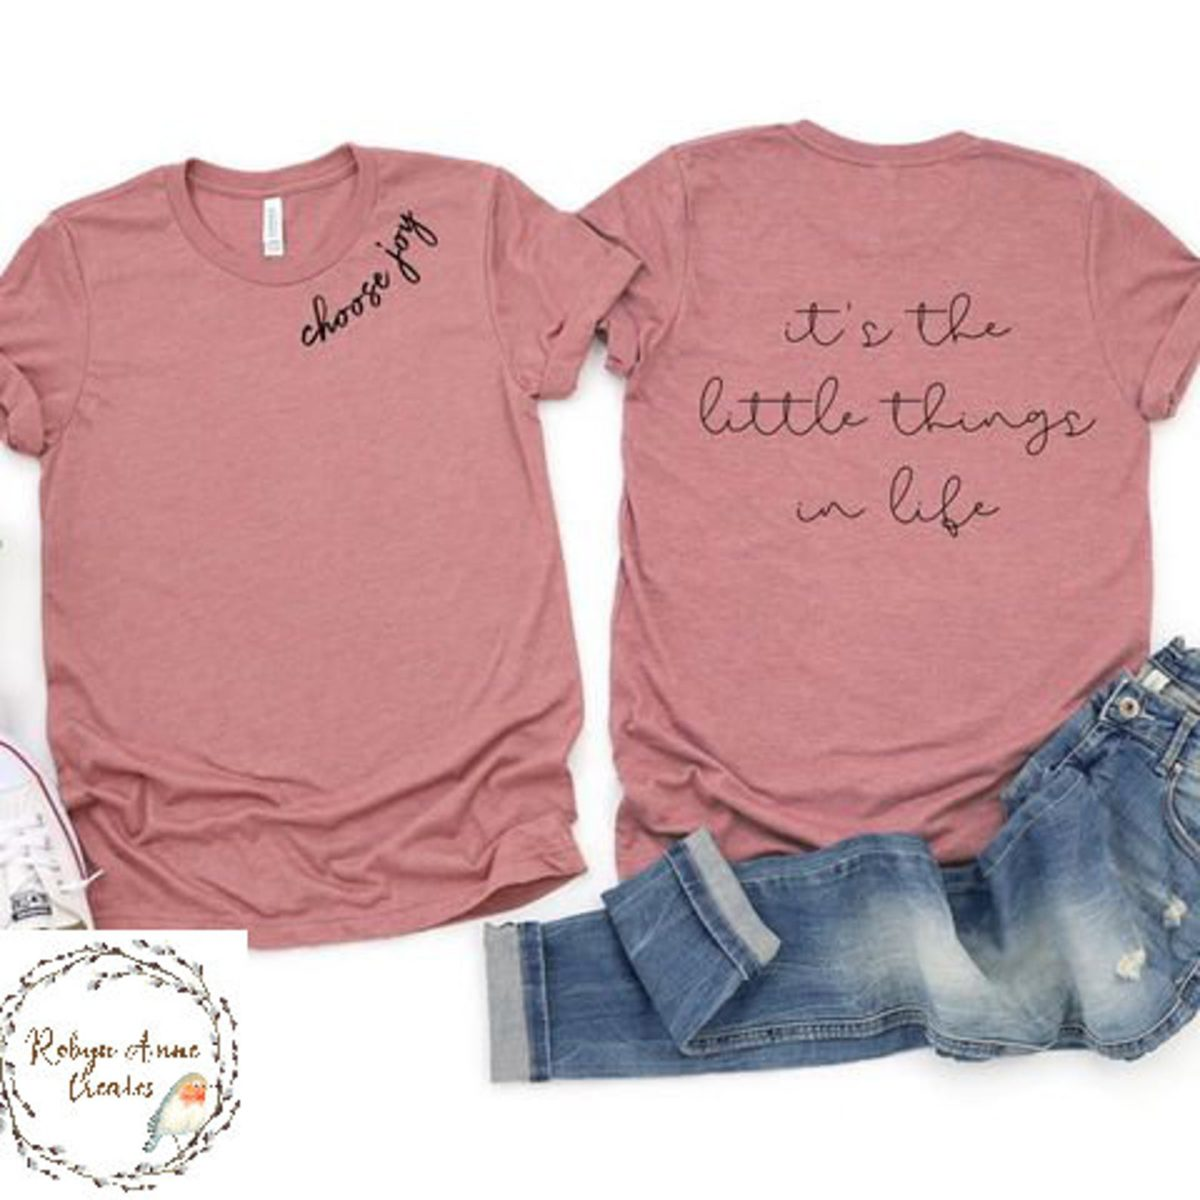 26 awesome etsy t-shirts that send a positive message and make great gifts | parenting questions | mamas uncut il 1588xn.2773368040 dfcq